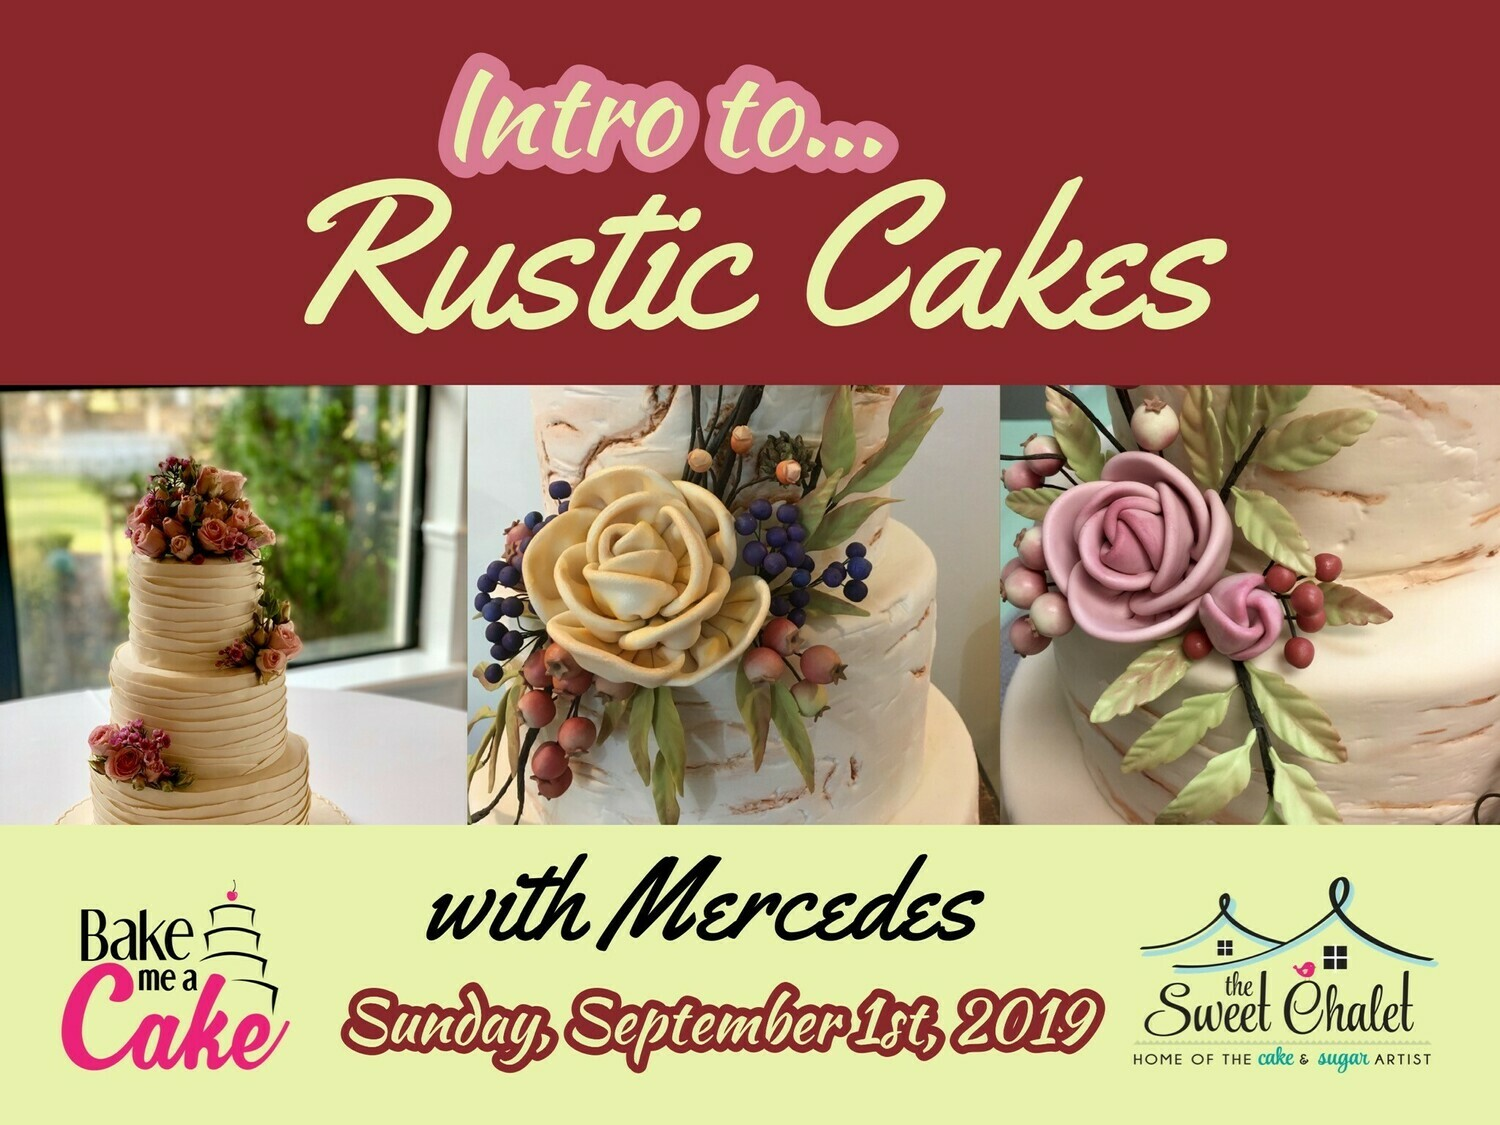 Intro to RUSTIC Cakes By Mercedes Strachwsky, On Sunday, September 1st, 2019 from 12:00 noon to 6:00 pm $199 Beginners Only